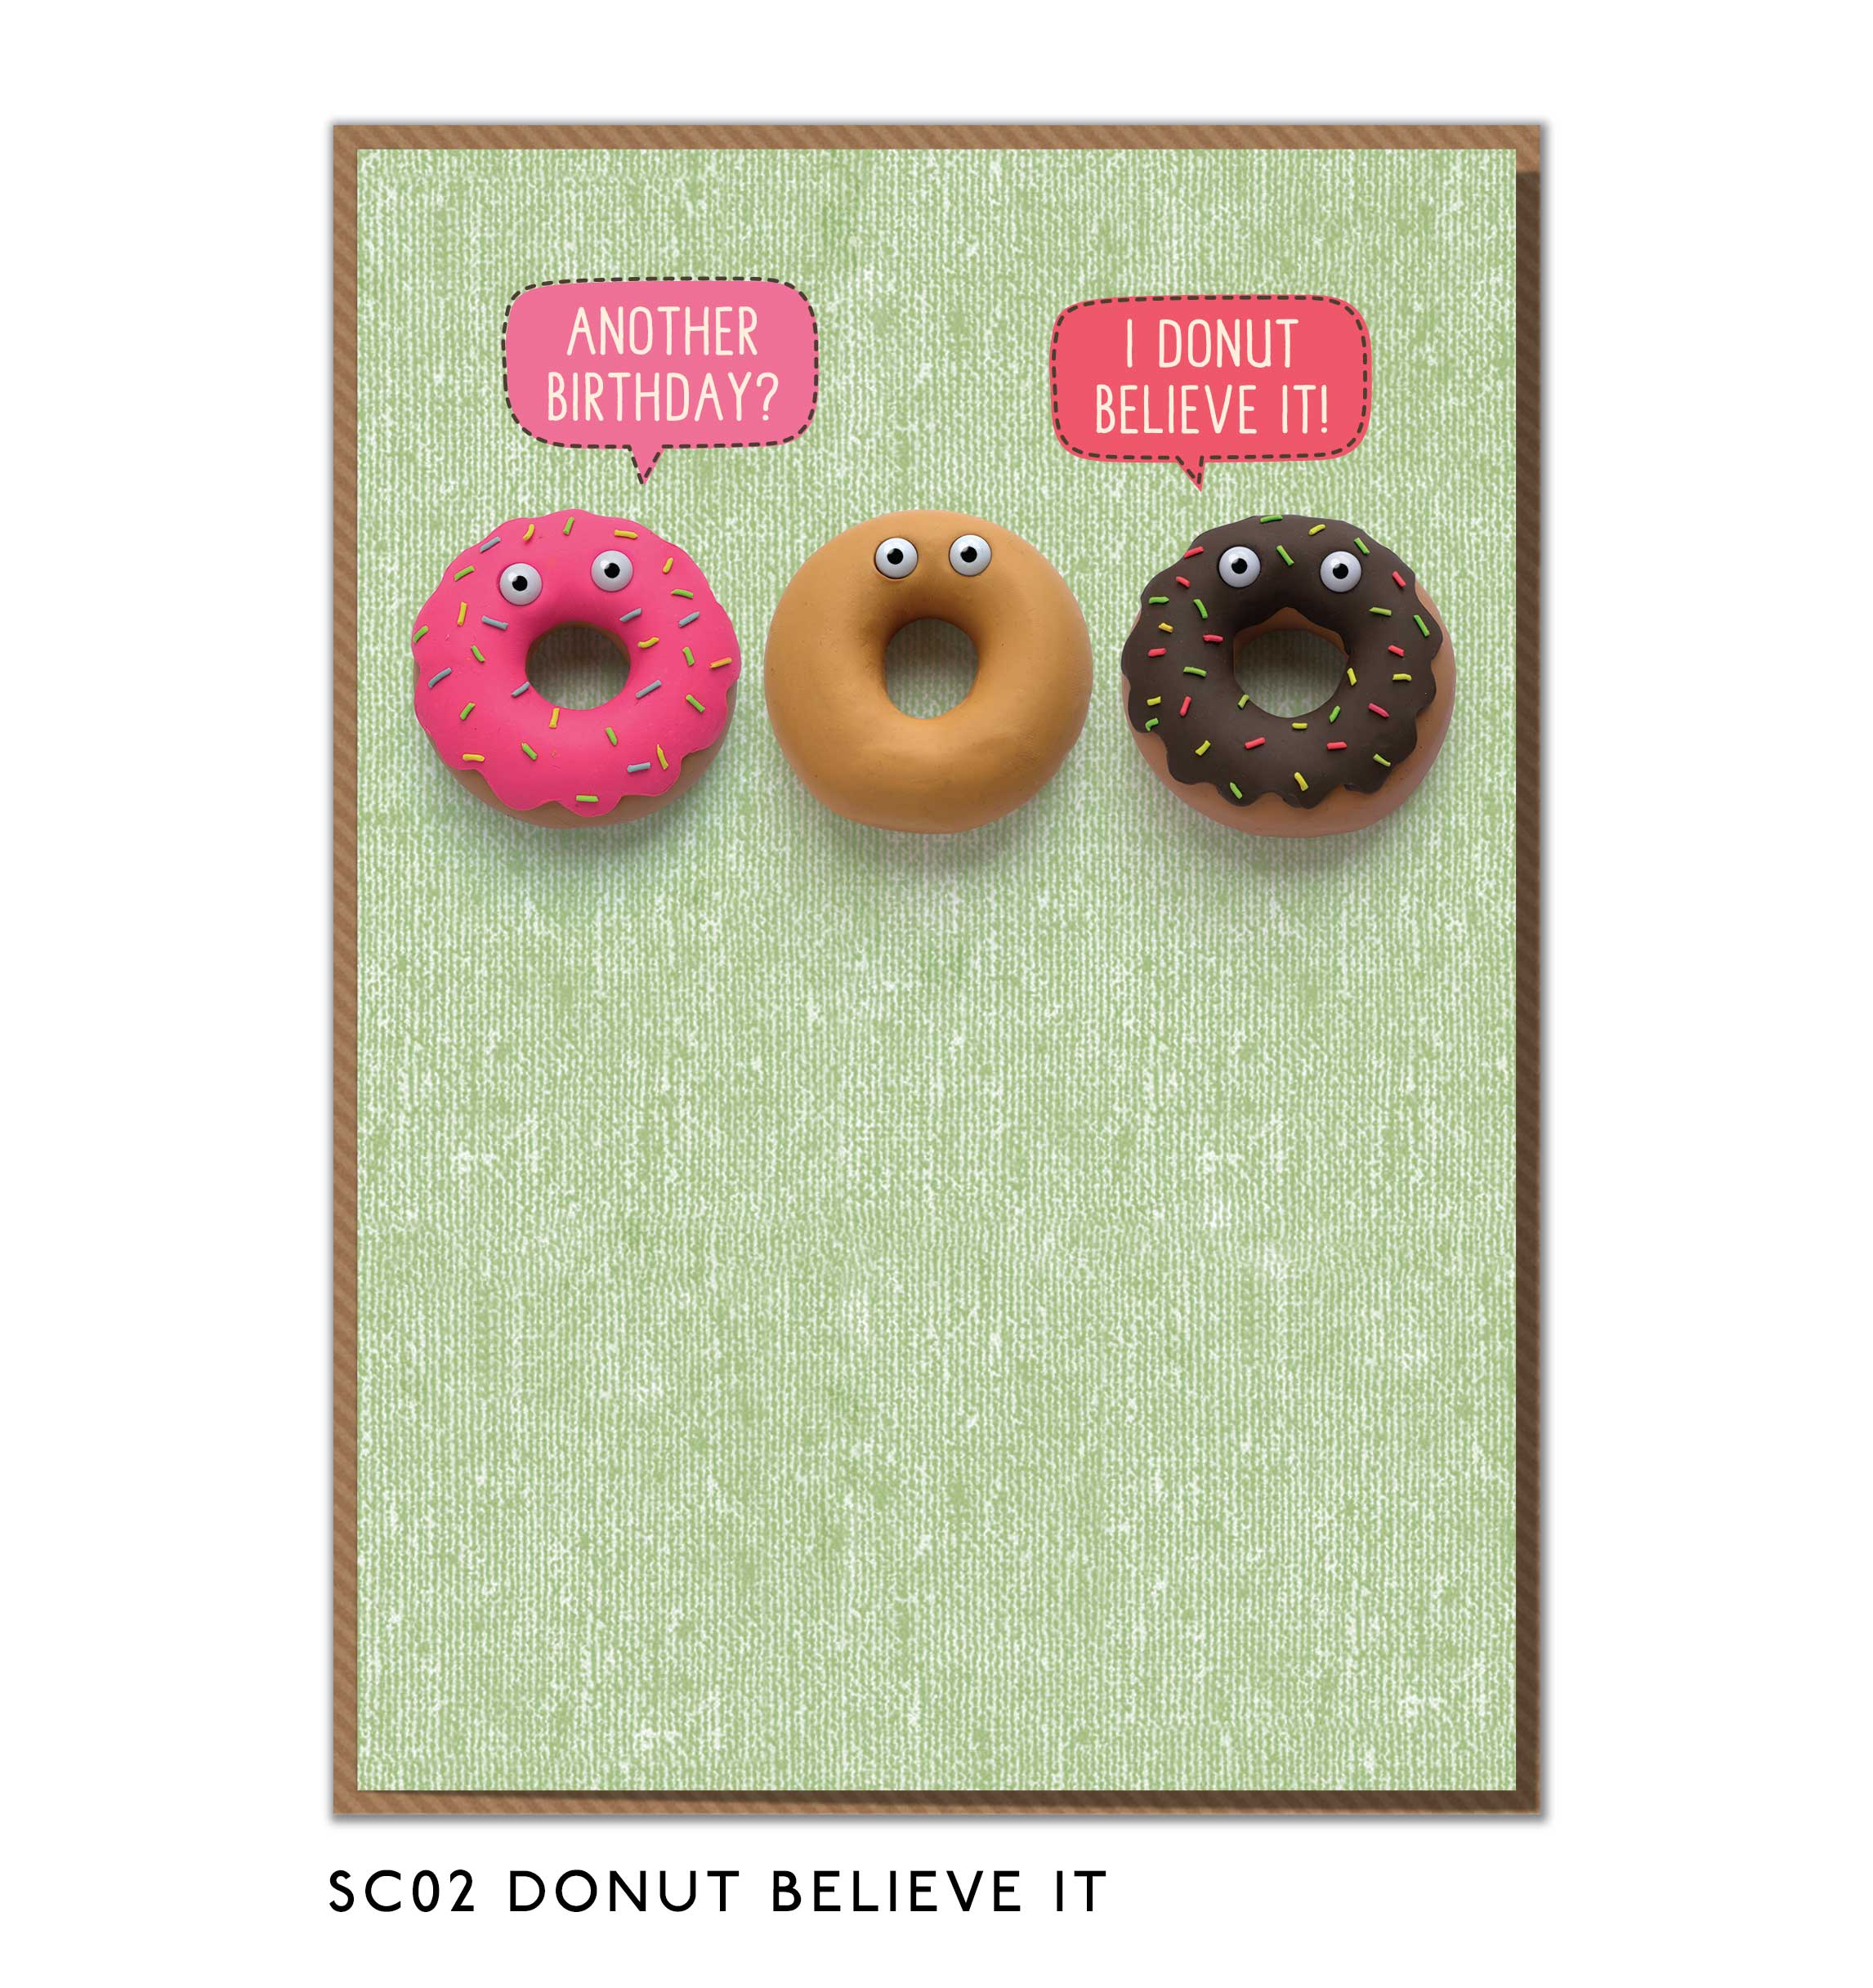 SC02-DONUT-BELIEVE-IT-.jpg